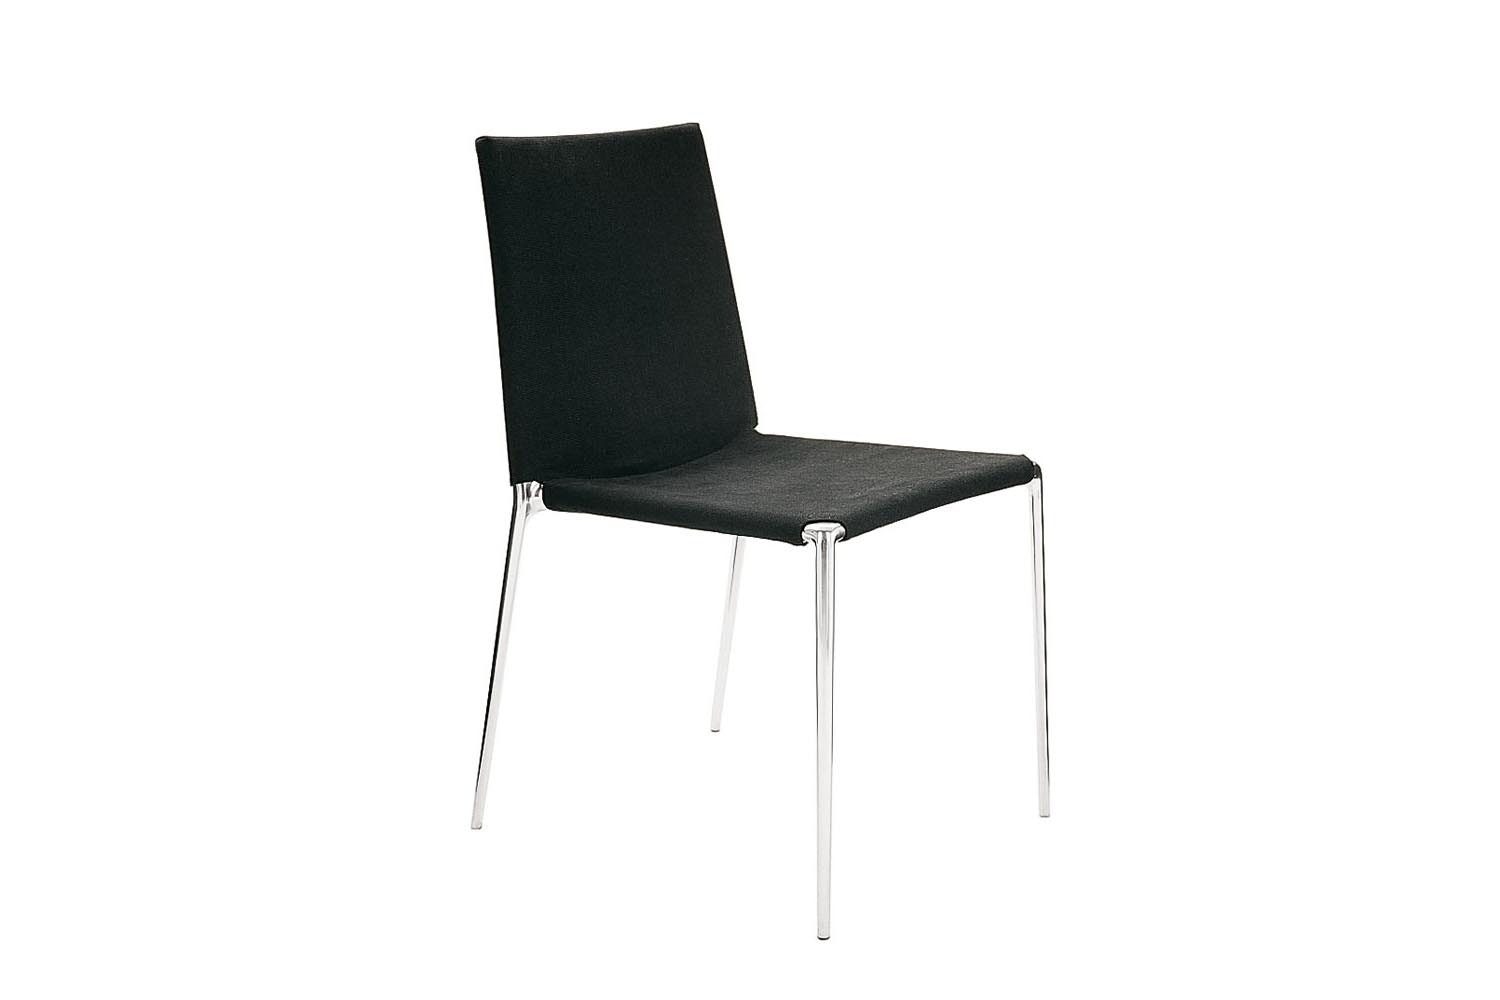 Alma Chair by Roberto Barbieri for B&B Italia